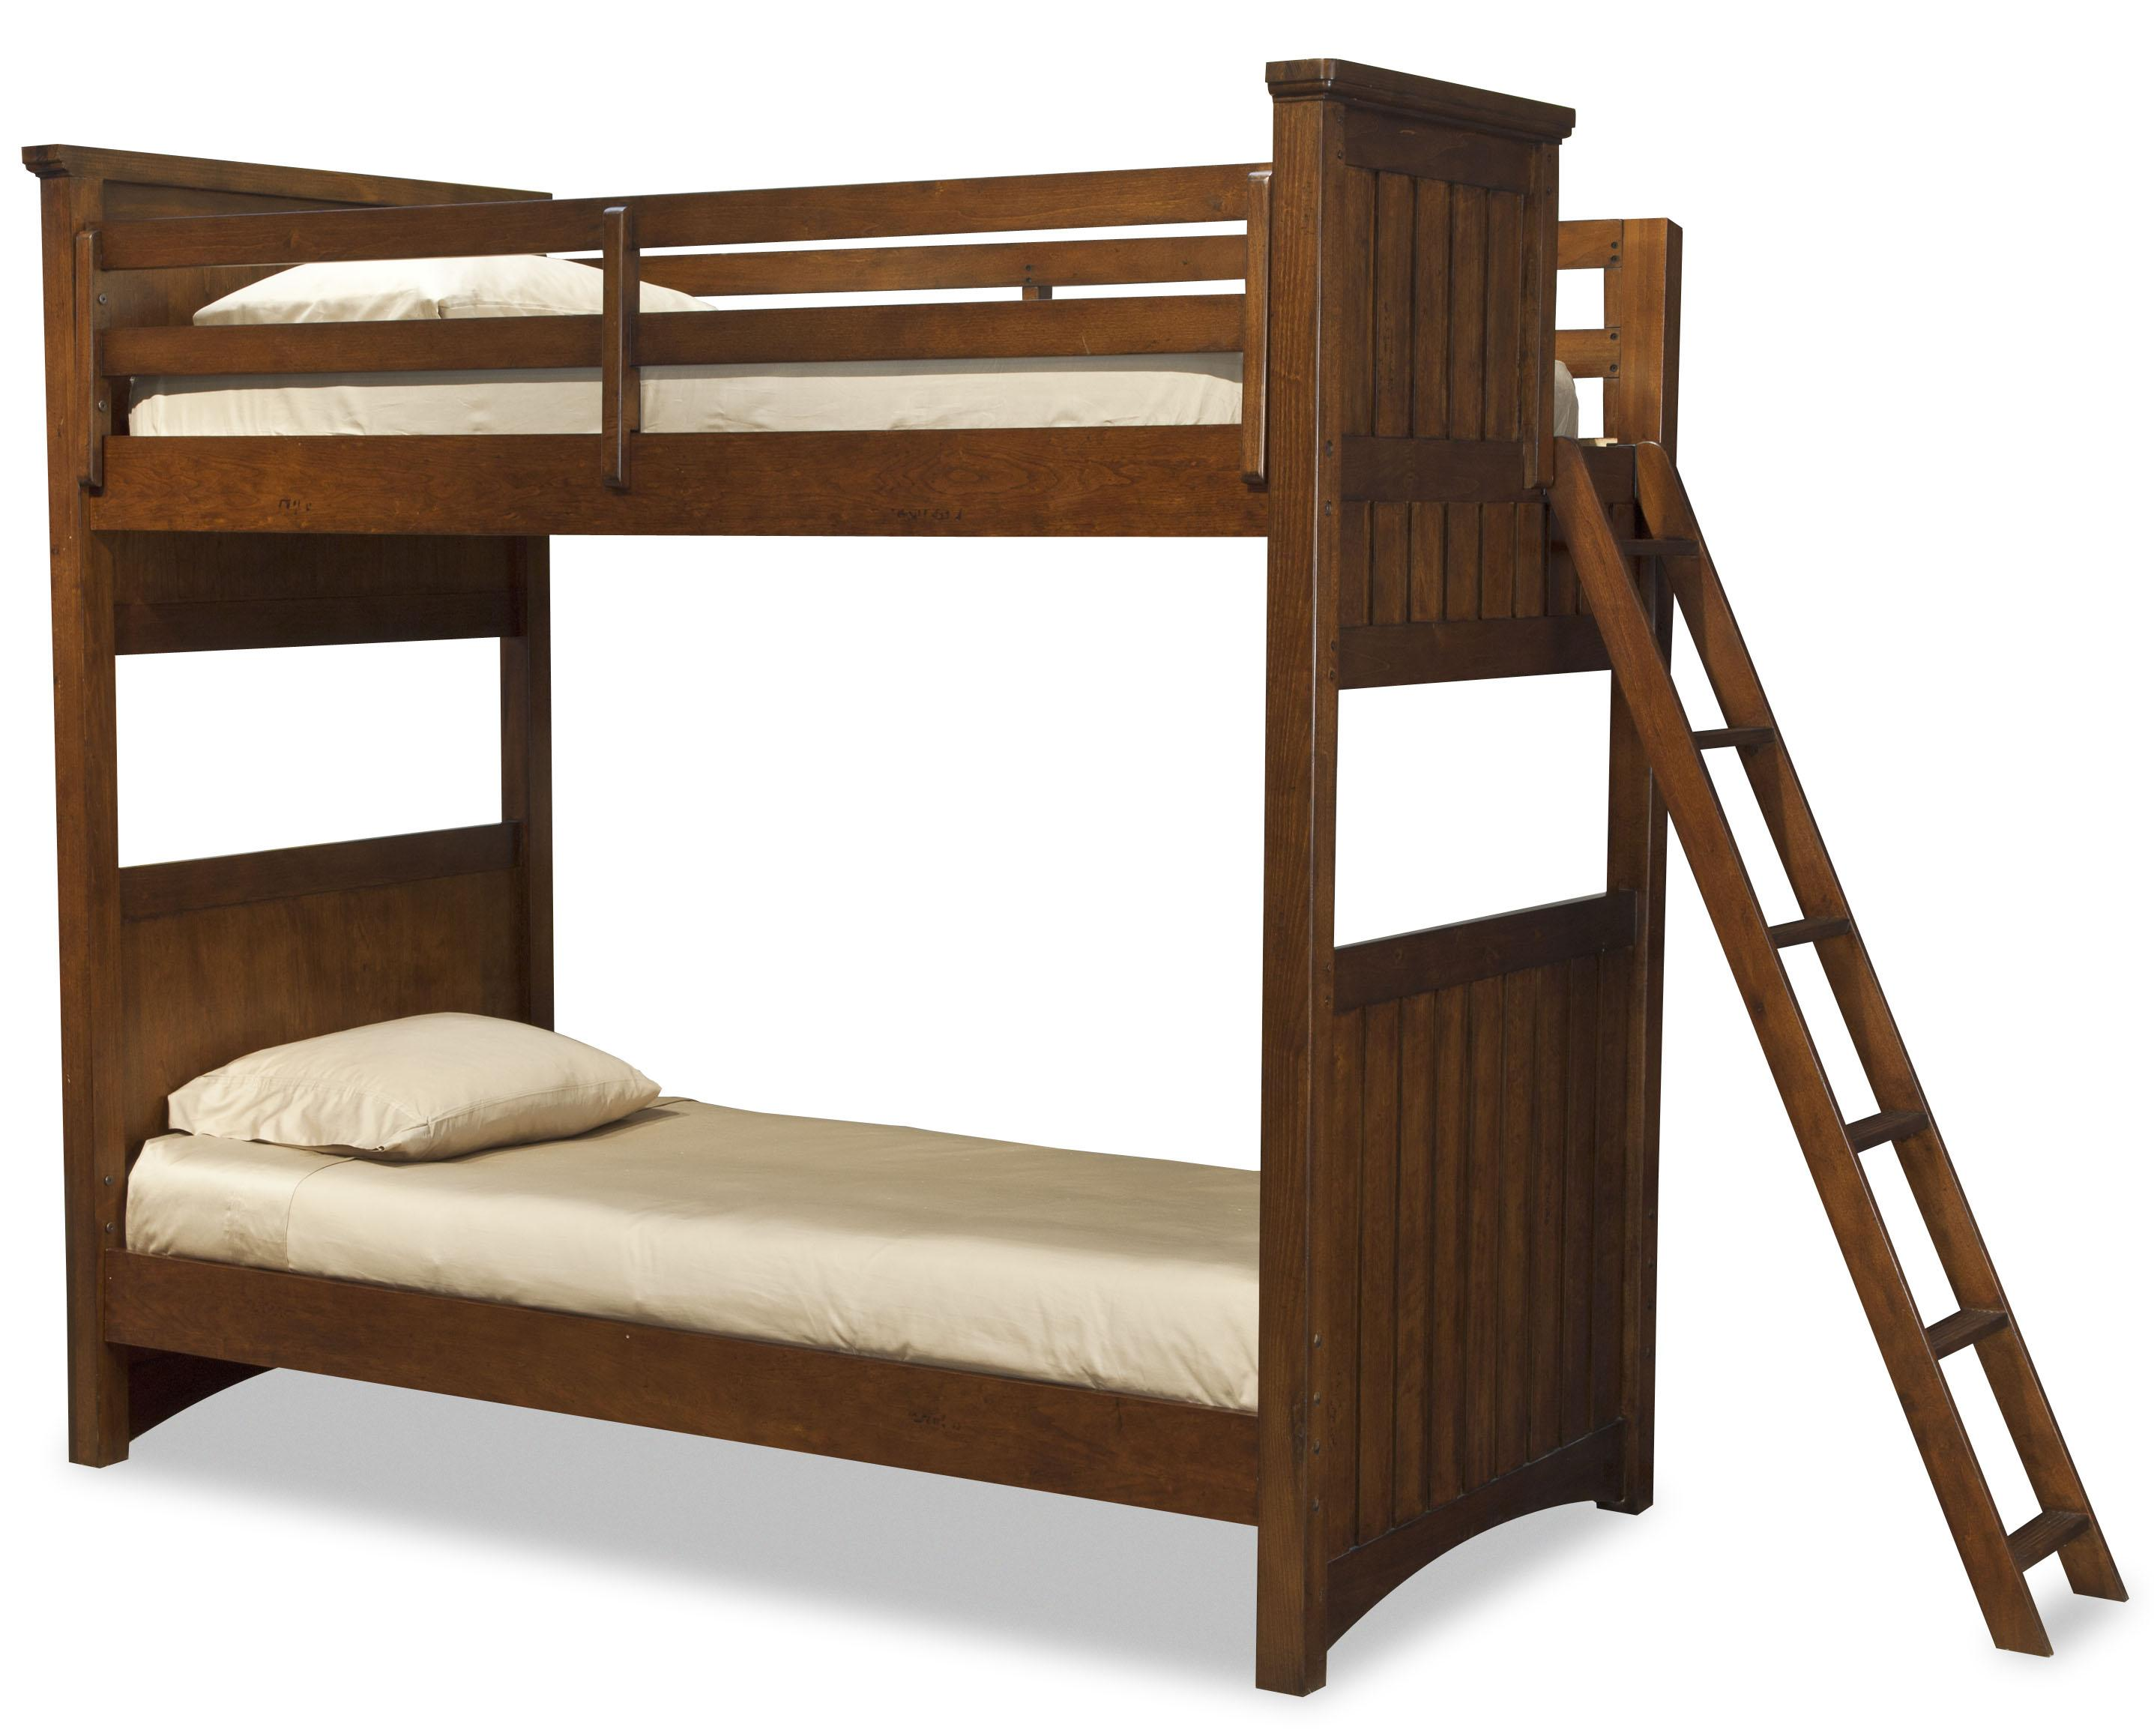 Legacy Classic Kids Dawson's Ridge Twin-over-Twin Bunk w/ Ladder - Item Number: 2960-8510+8320+8310+2x888-4923C